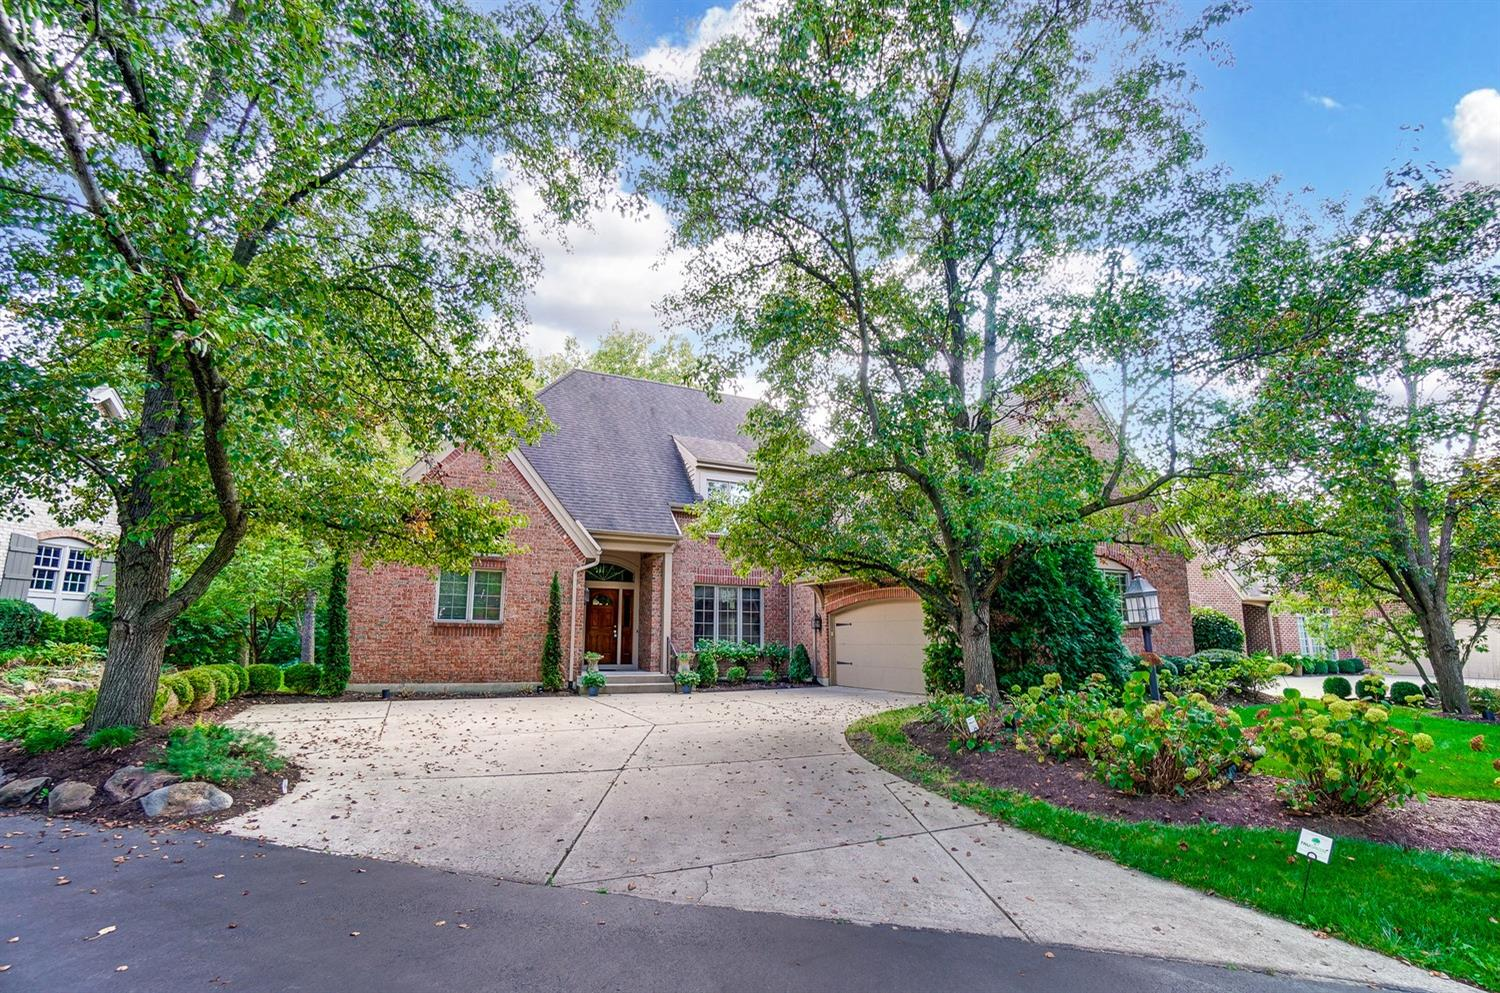 1222 Courtyard Place, Centerville, Ohio 45458, 5 Bedrooms Bedrooms, 17 Rooms Rooms,3 BathroomsBathrooms,Single Family Residence,For Sale,Courtyard,1718736